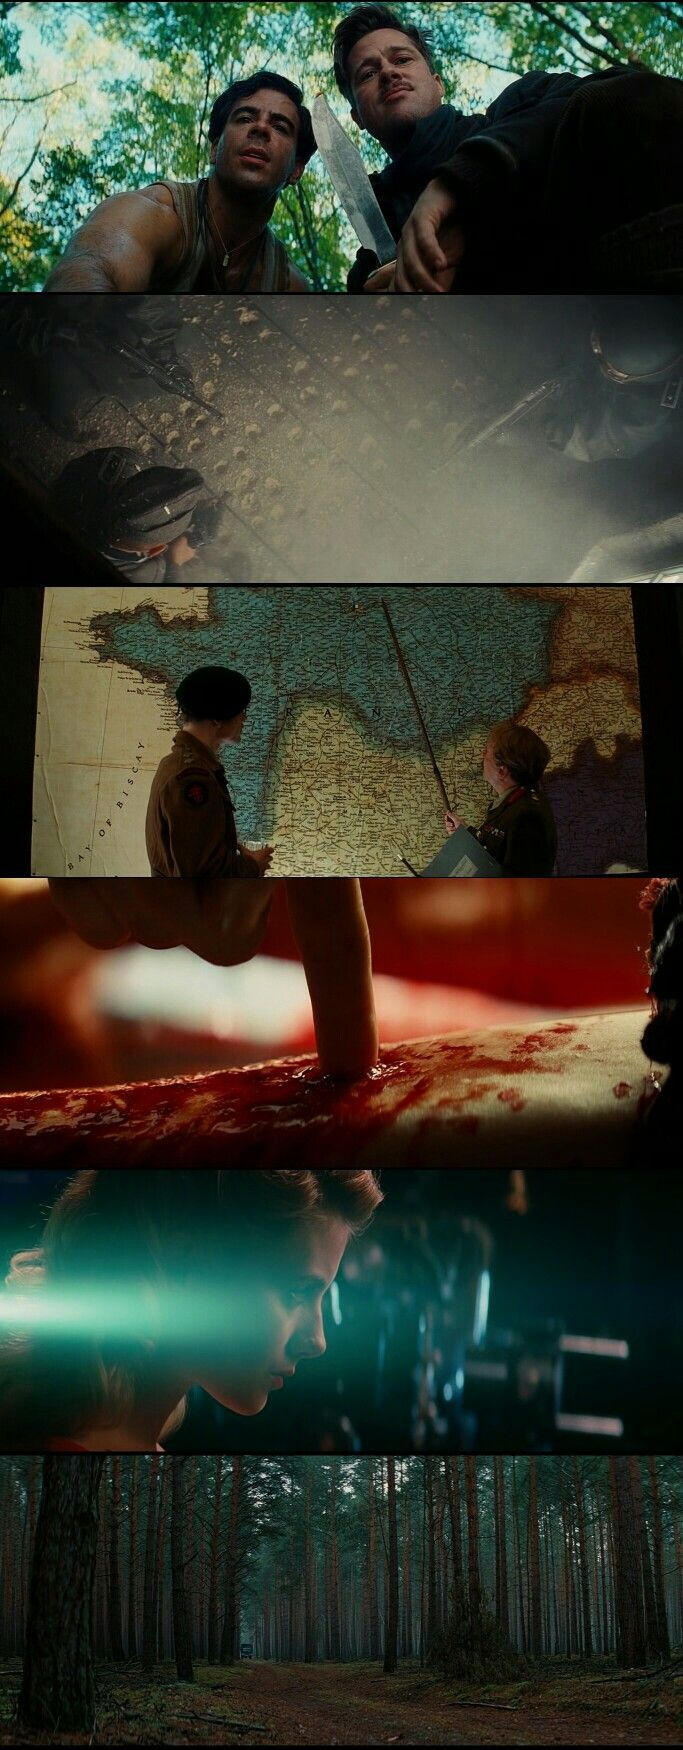 Inglourious Basterds(2009) Directed by Quentin Tarantino. Cinematography by Robert Richardson.